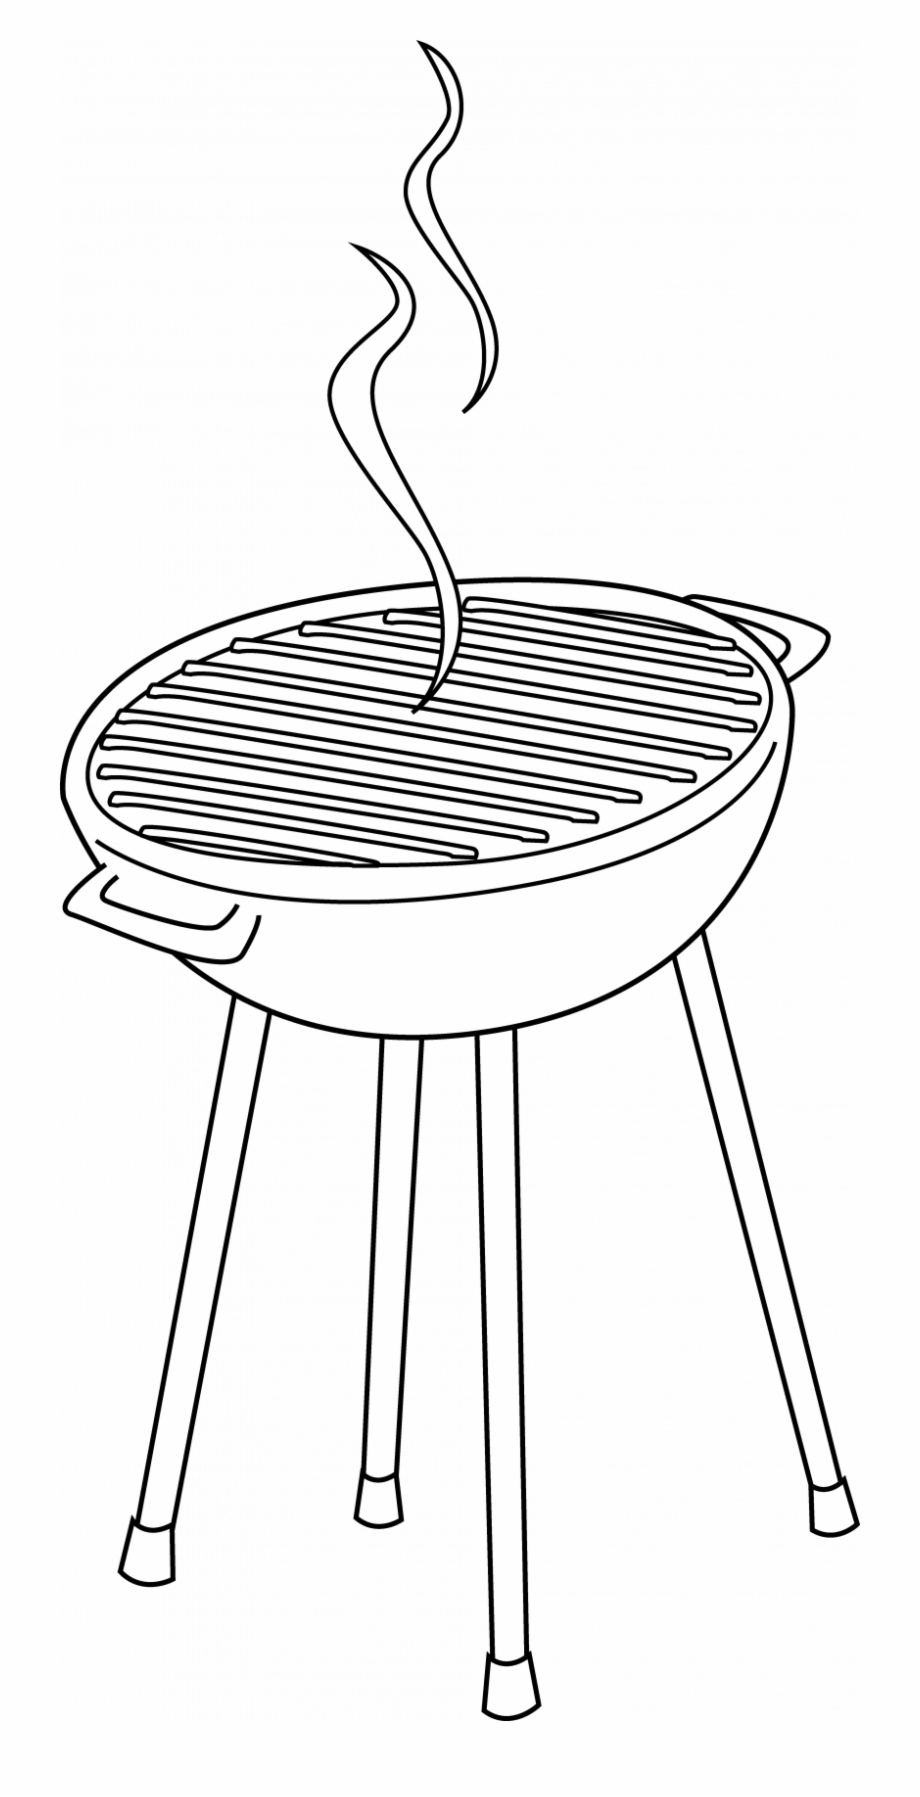 Barbeque Grill Clip Art Free.